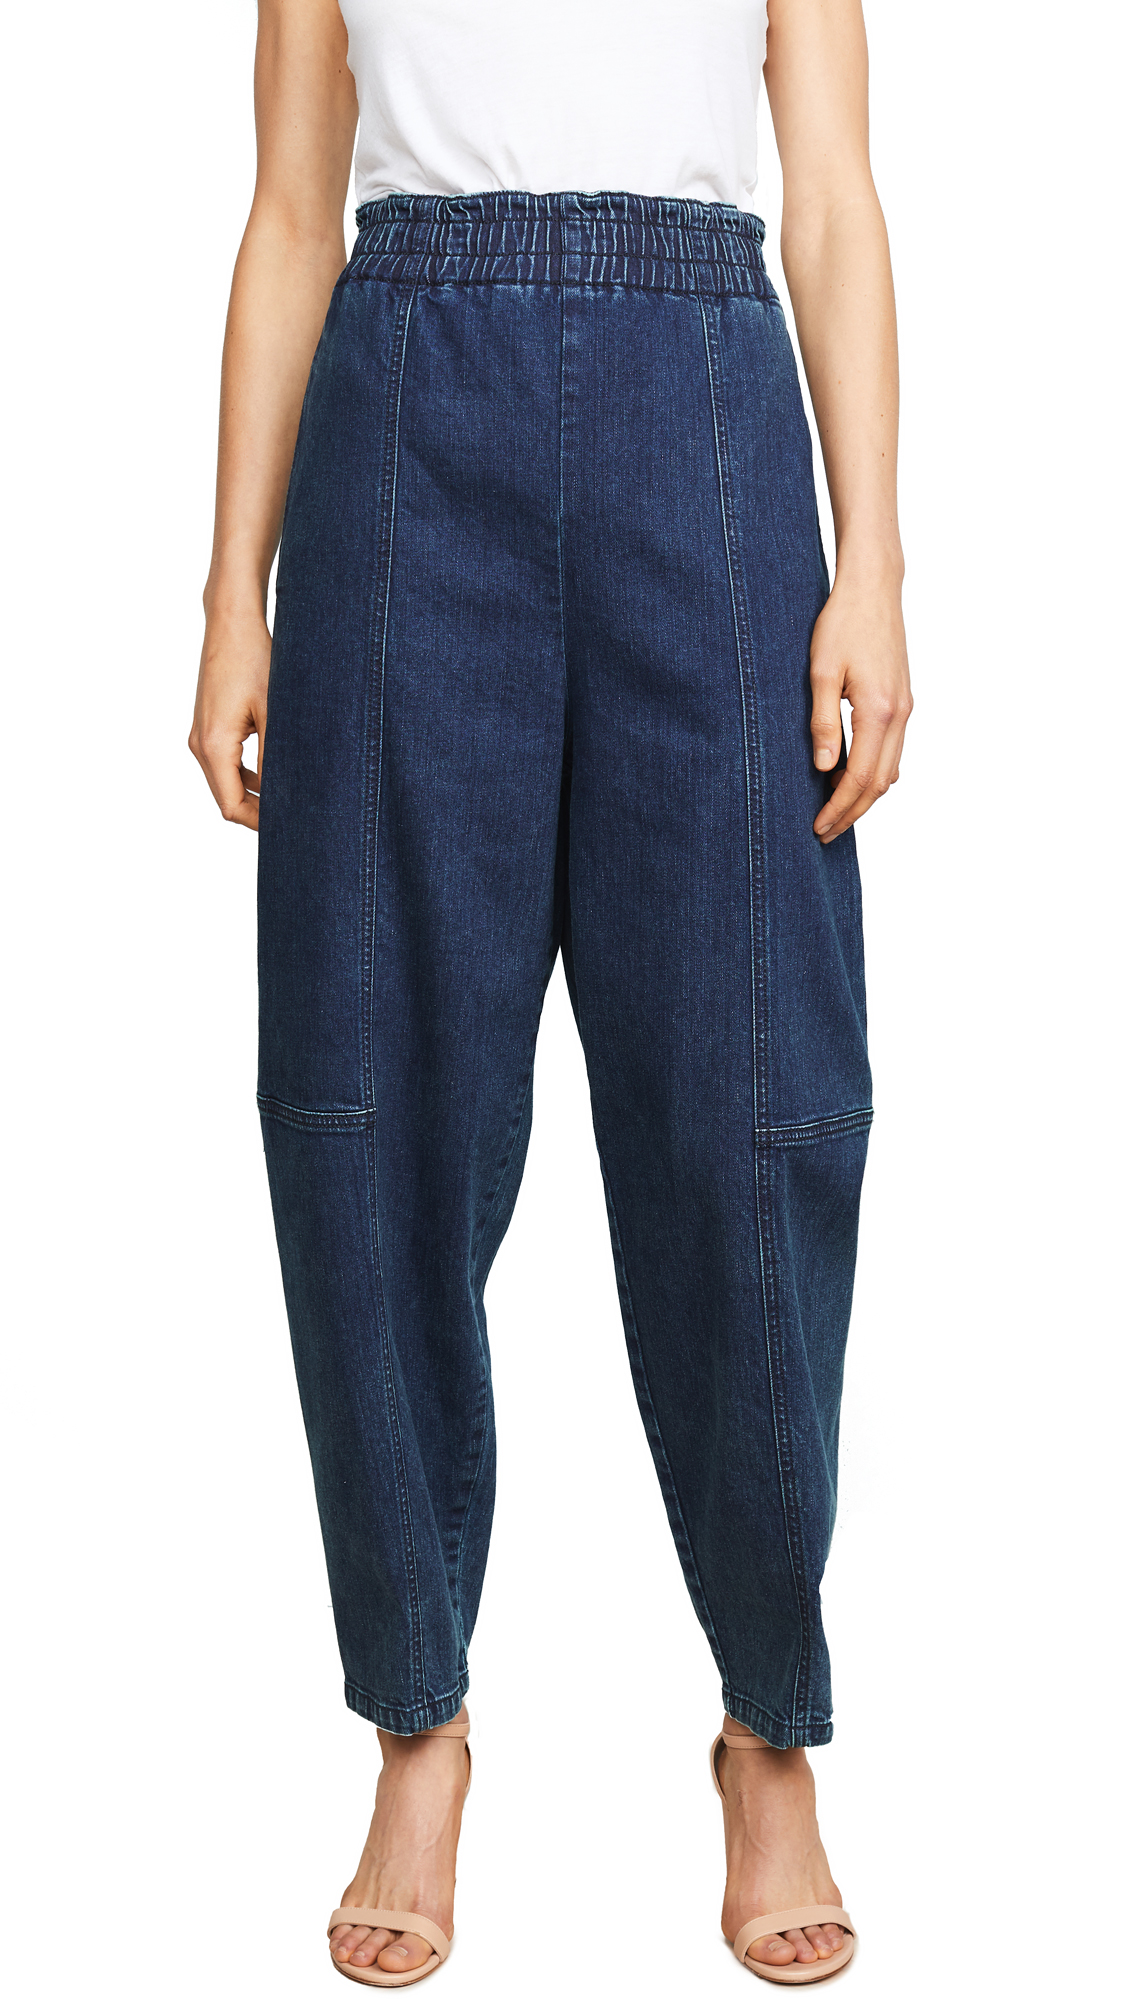 High Waisted Denim Pants, Obscure Navy